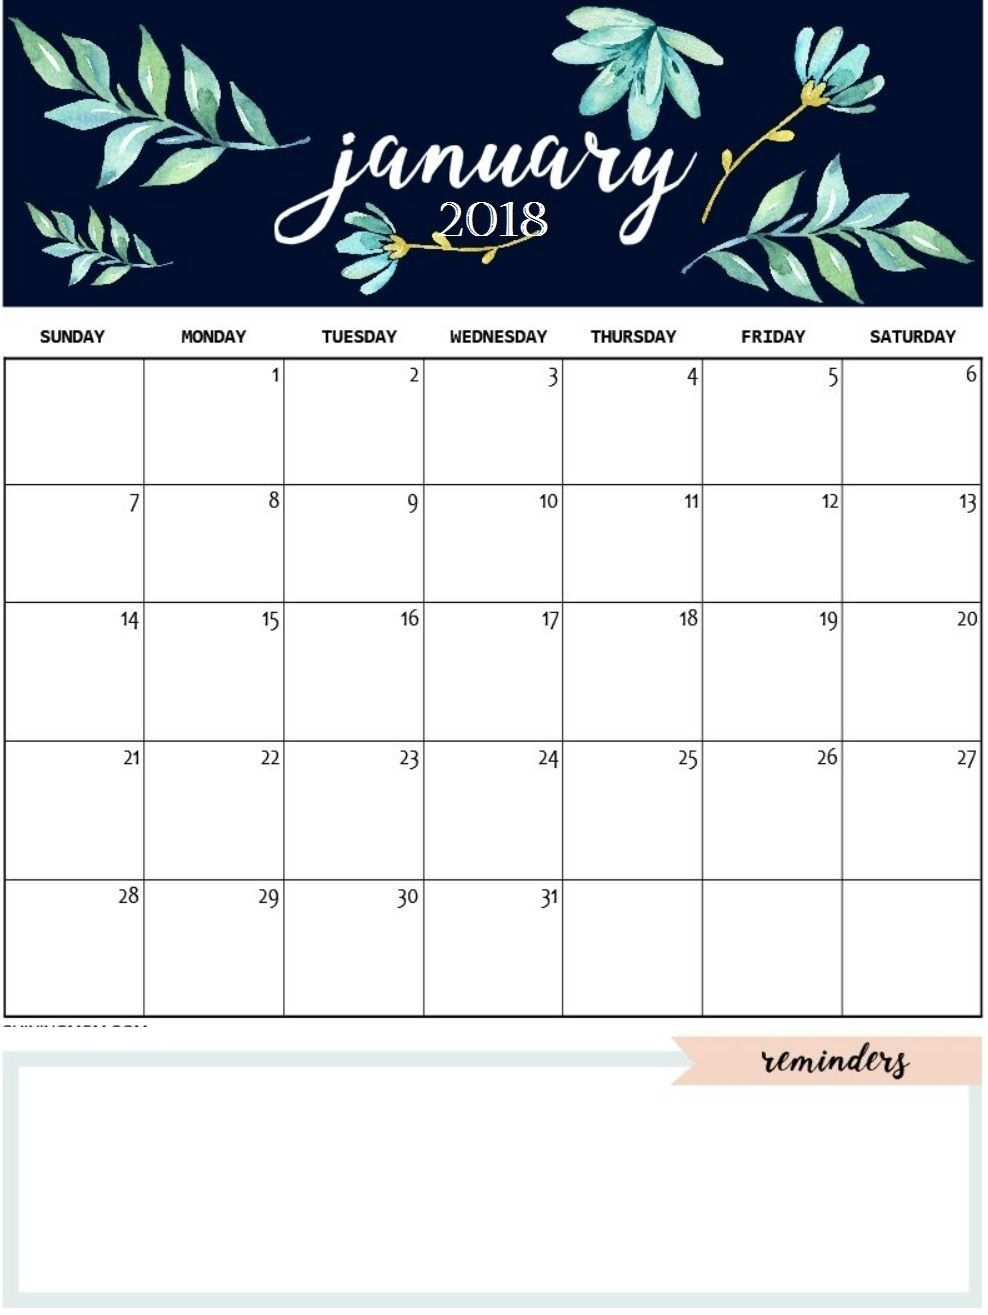 January 2019 Calendar Template Daily Work In Design January